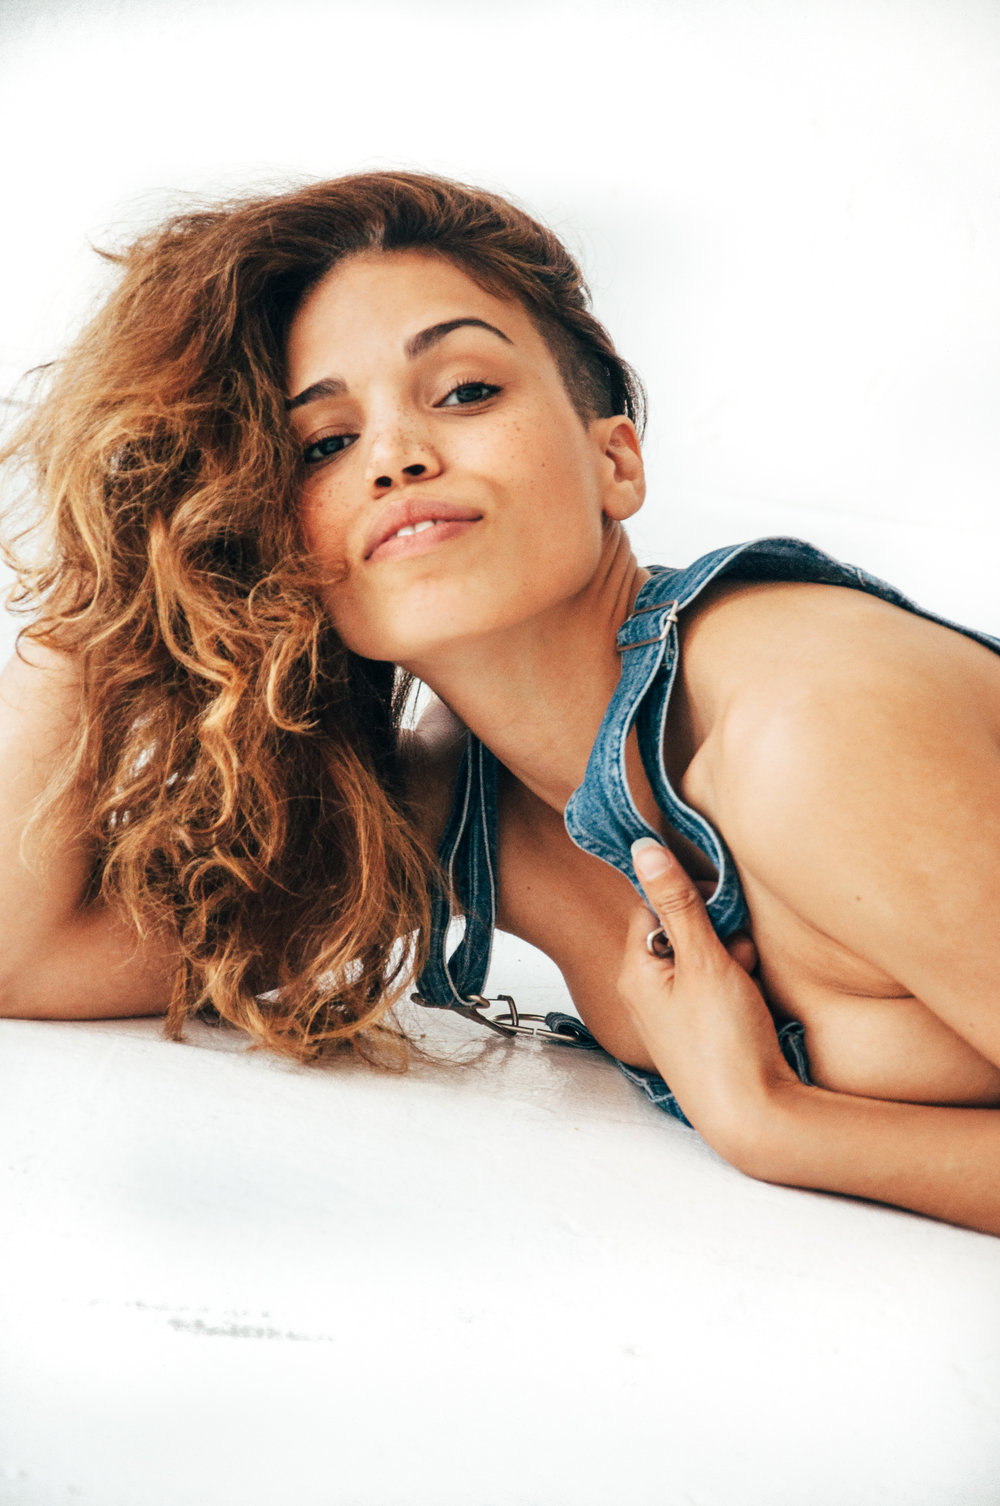 ciararenee.actress.performer.genderstereotypes.model.nyc.portraits.lifestyle-64.jpg